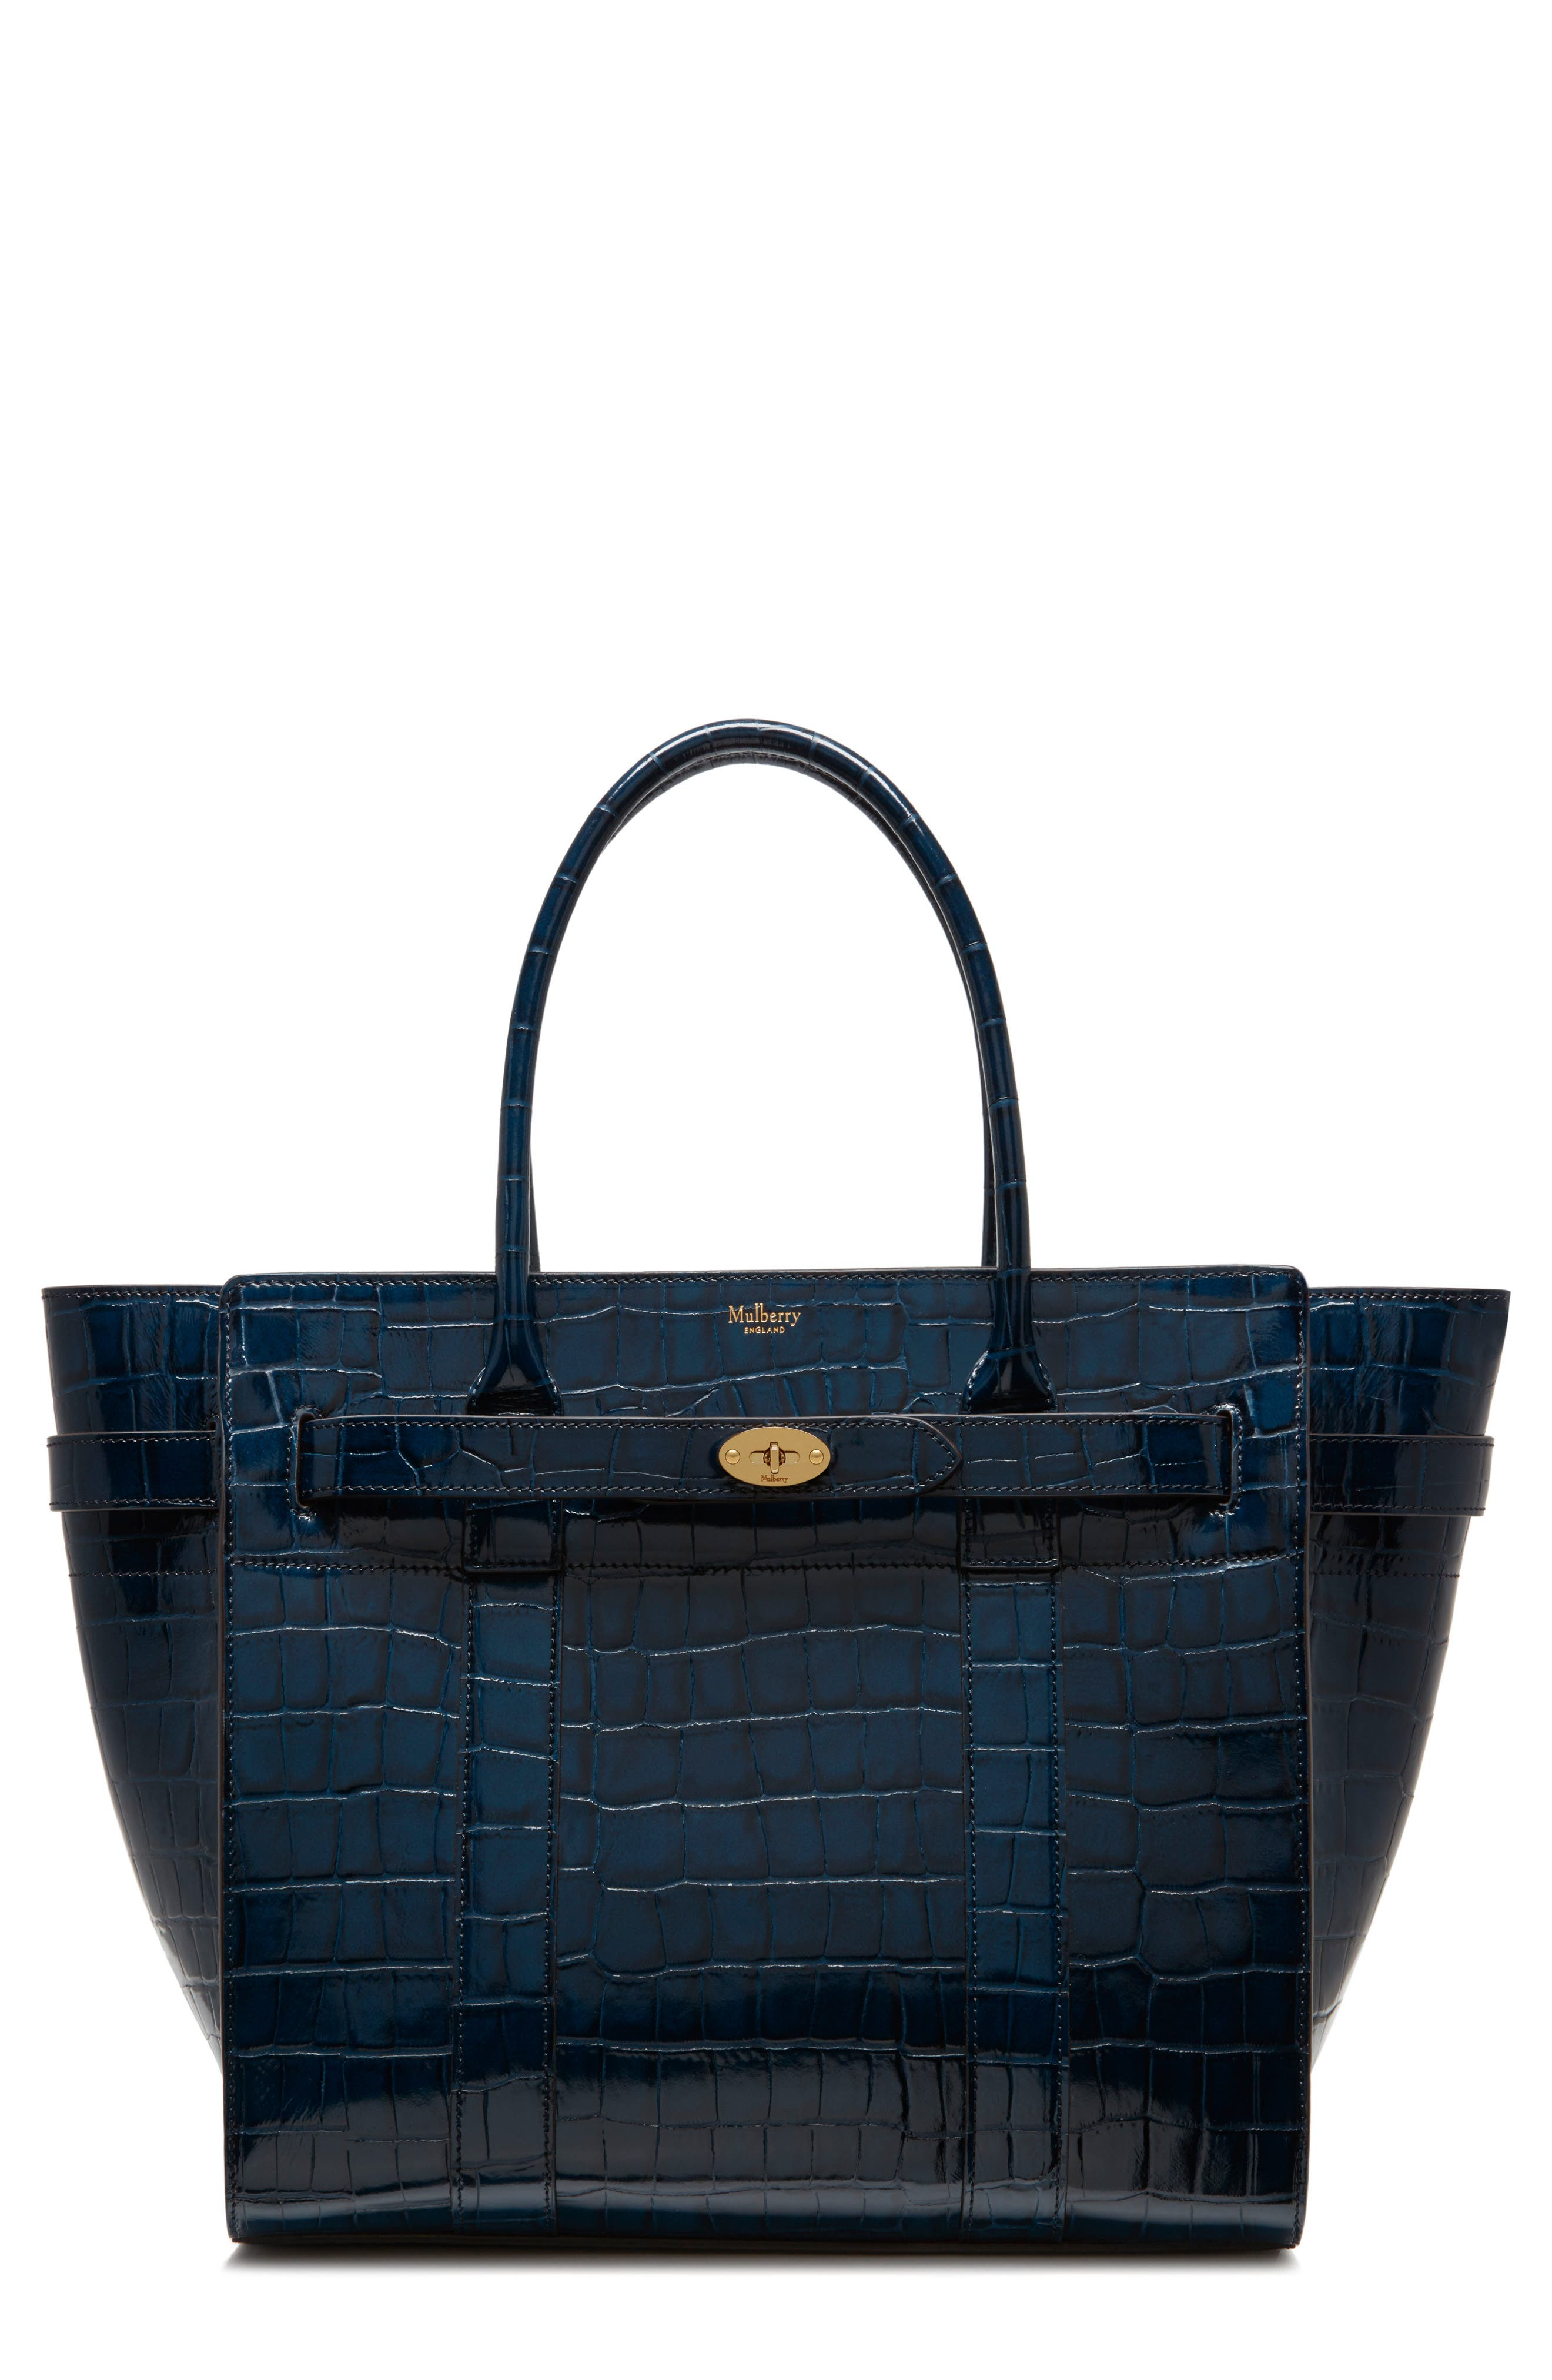 MULBERRY Bayswater Leather Satchel